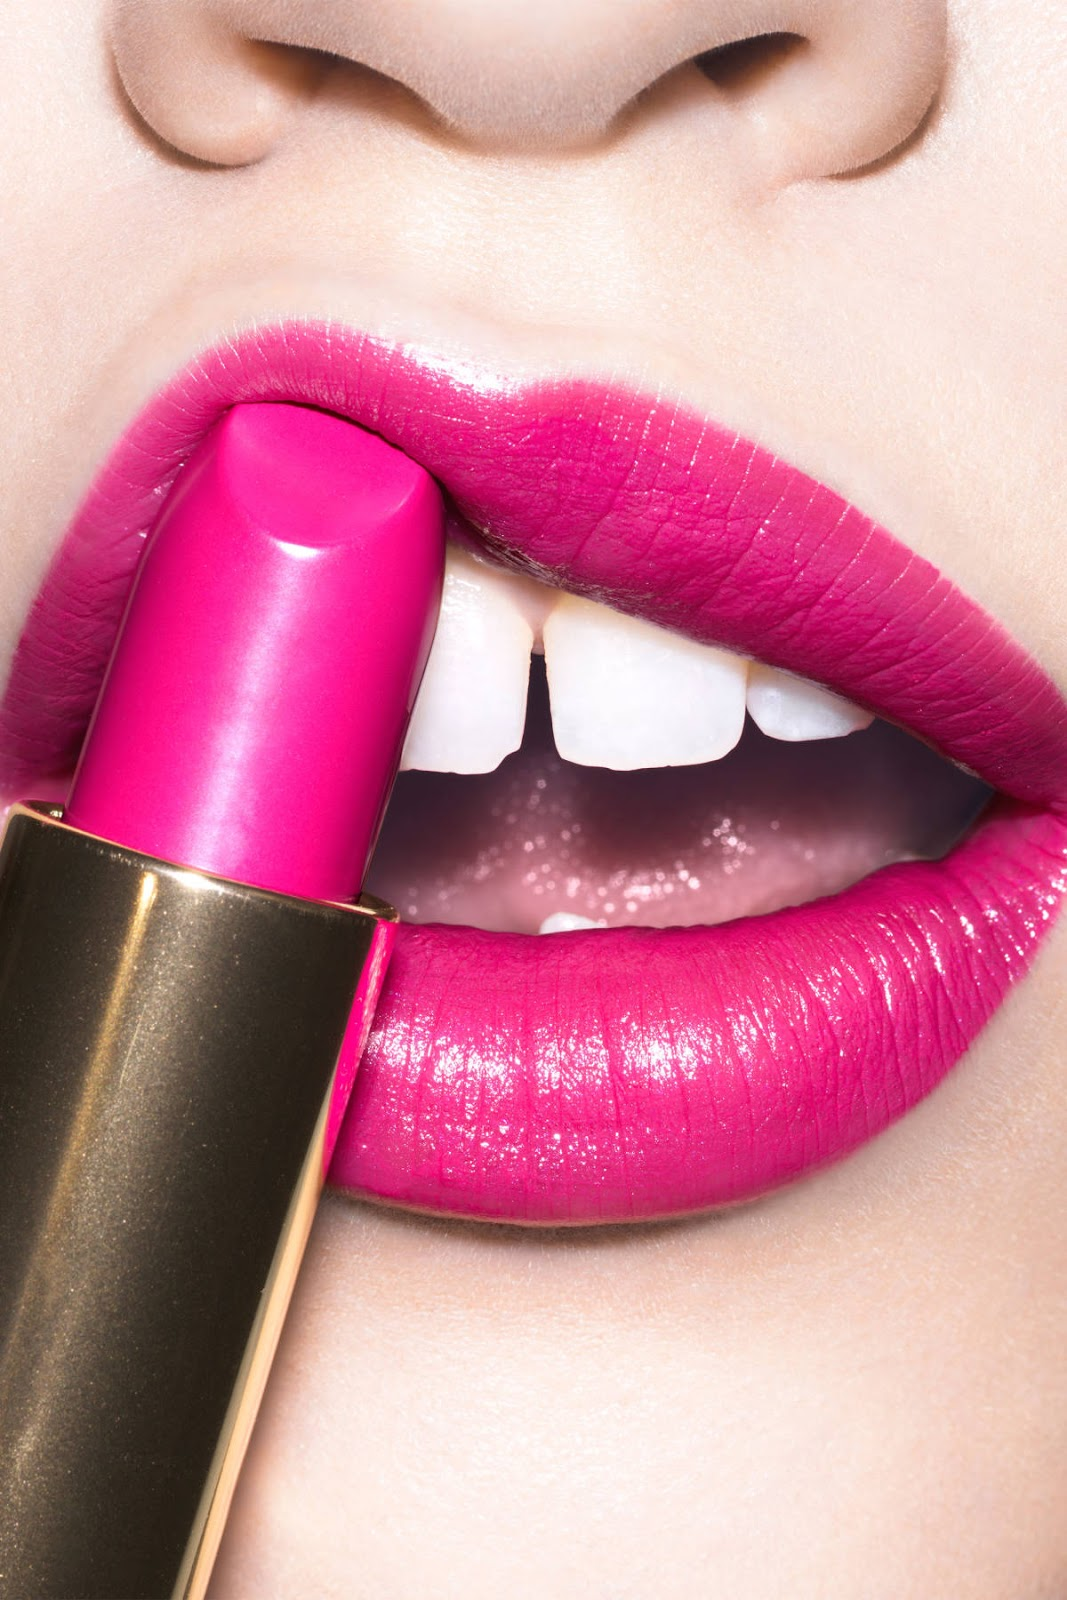 Lipsticks that Make Your Teeth Look WHITER!